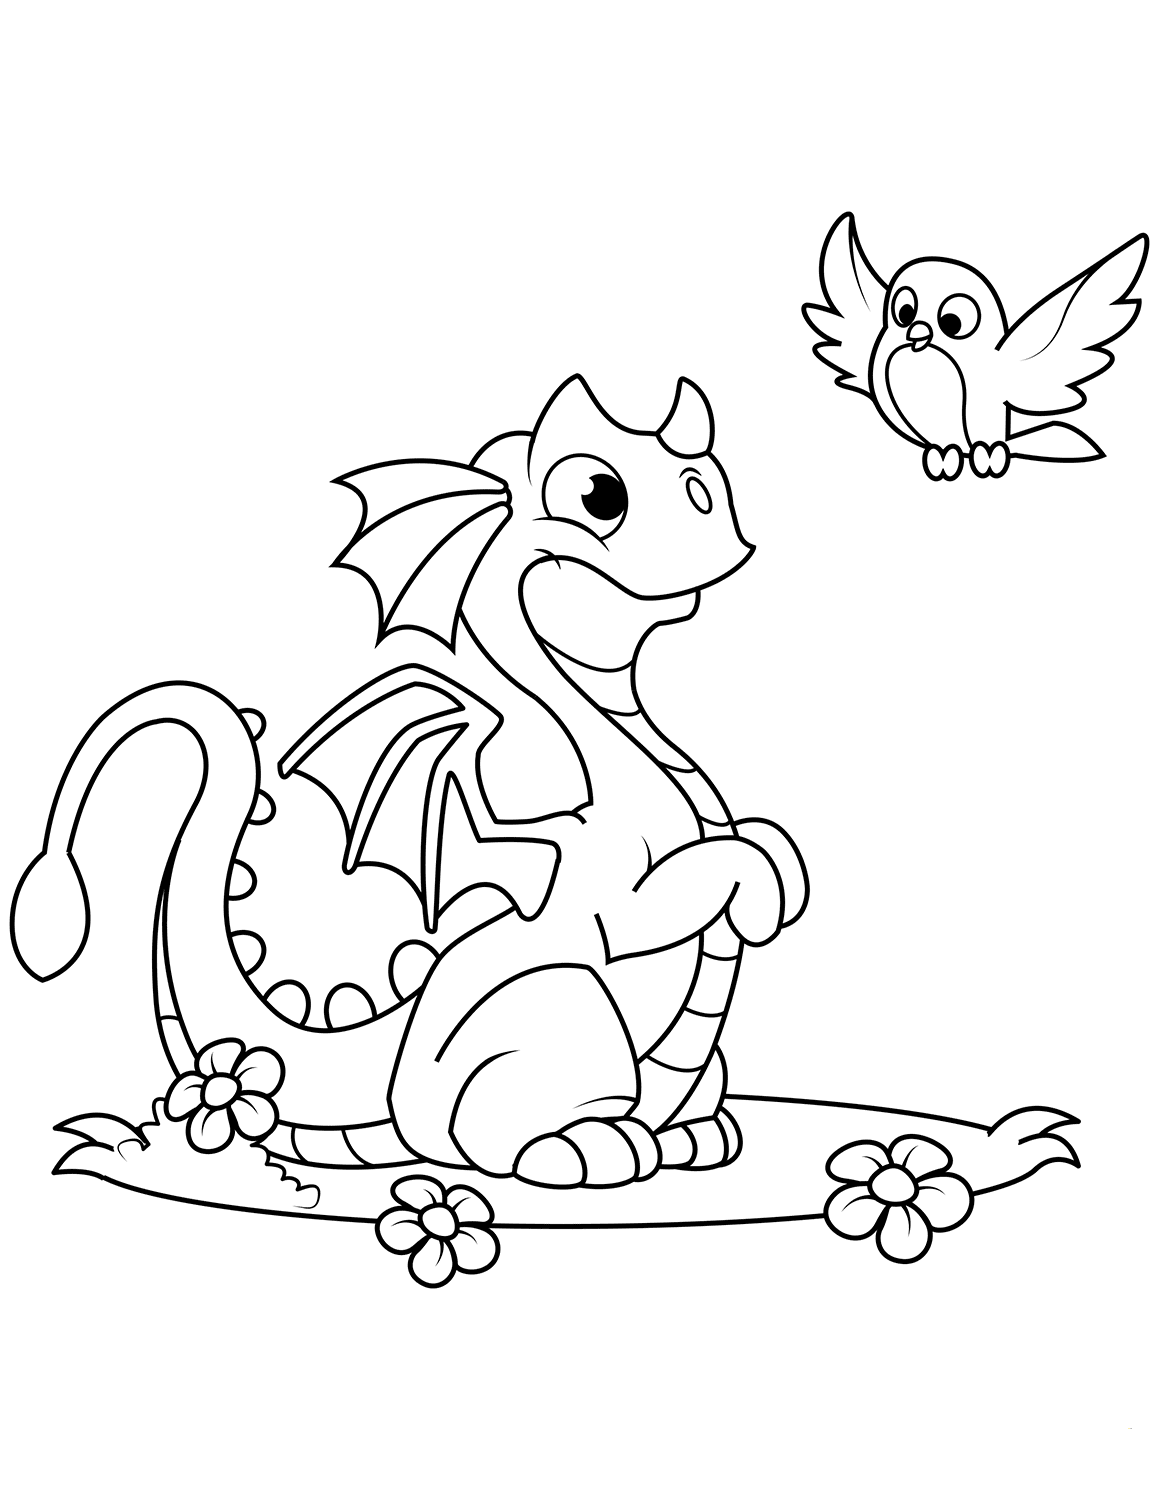 dragon for coloring free printable coloring pages for adults advanced dragons coloring dragon for